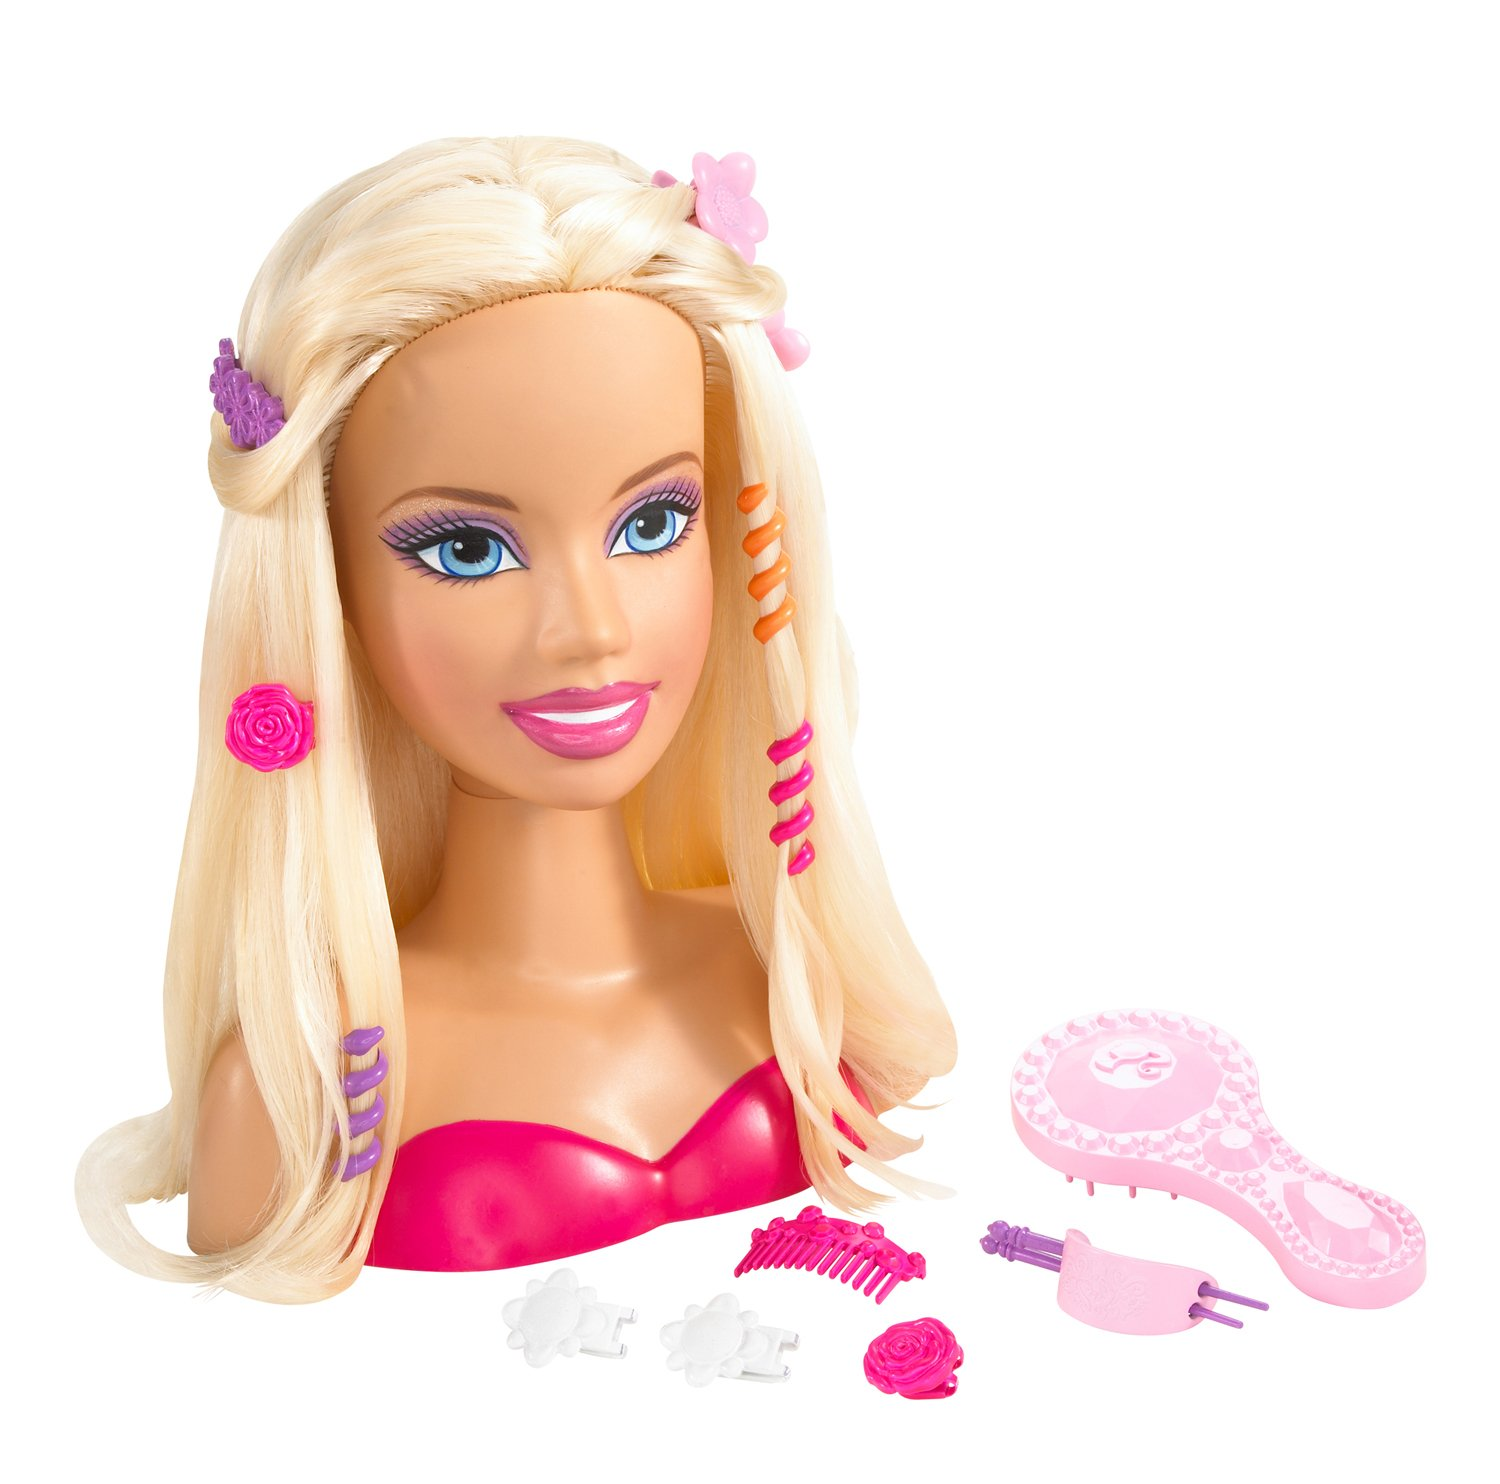 Toys For Hair : S toys you were desperate to own that actually